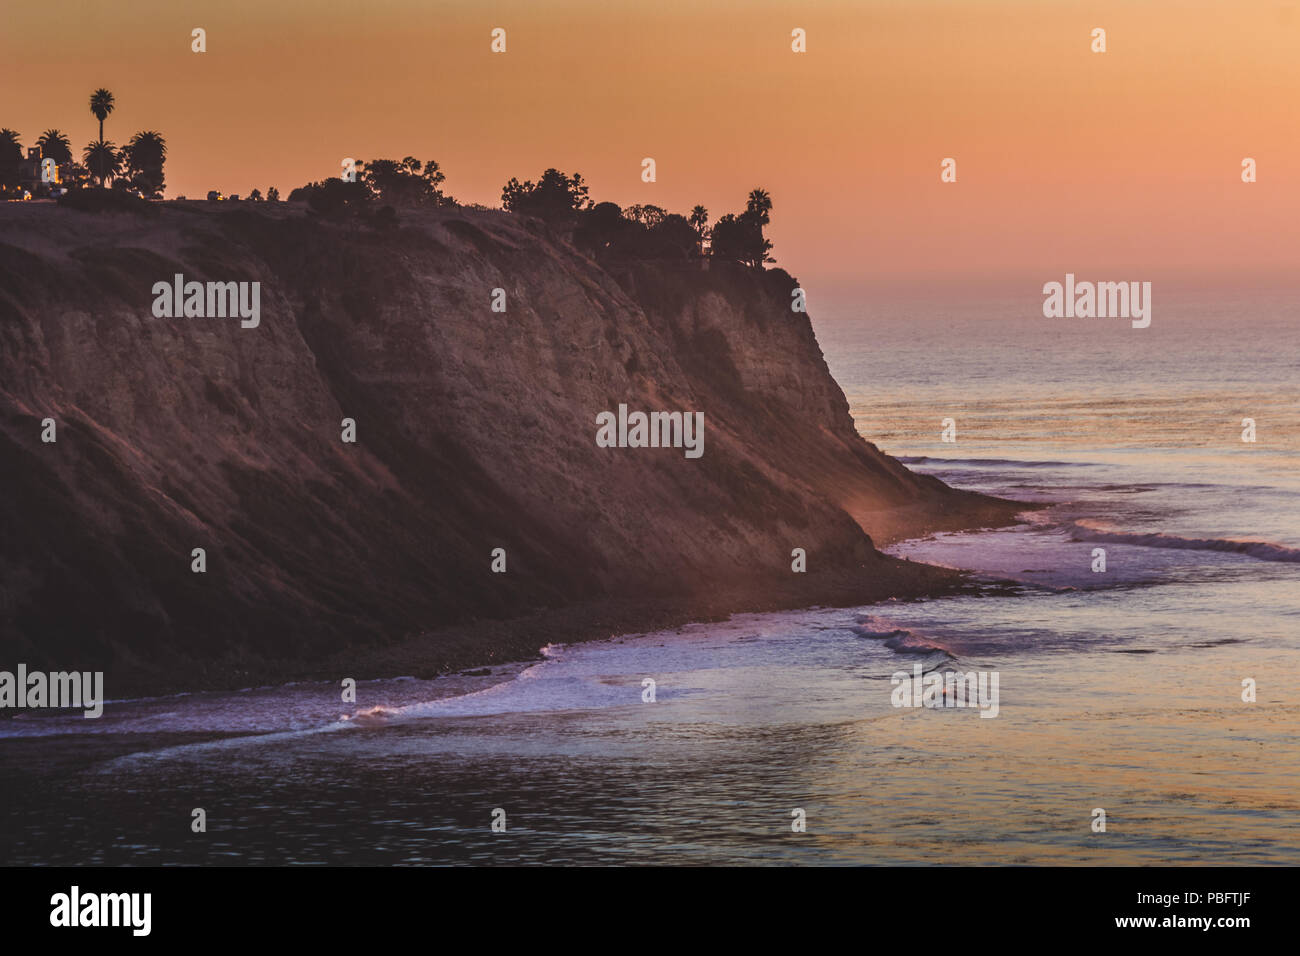 Long-exposure shot taken after sunset of coastal Palos Verdes Estates with silhouette of steep cliffs, trees, and homes as well as smooth ocean waves, - Stock Image